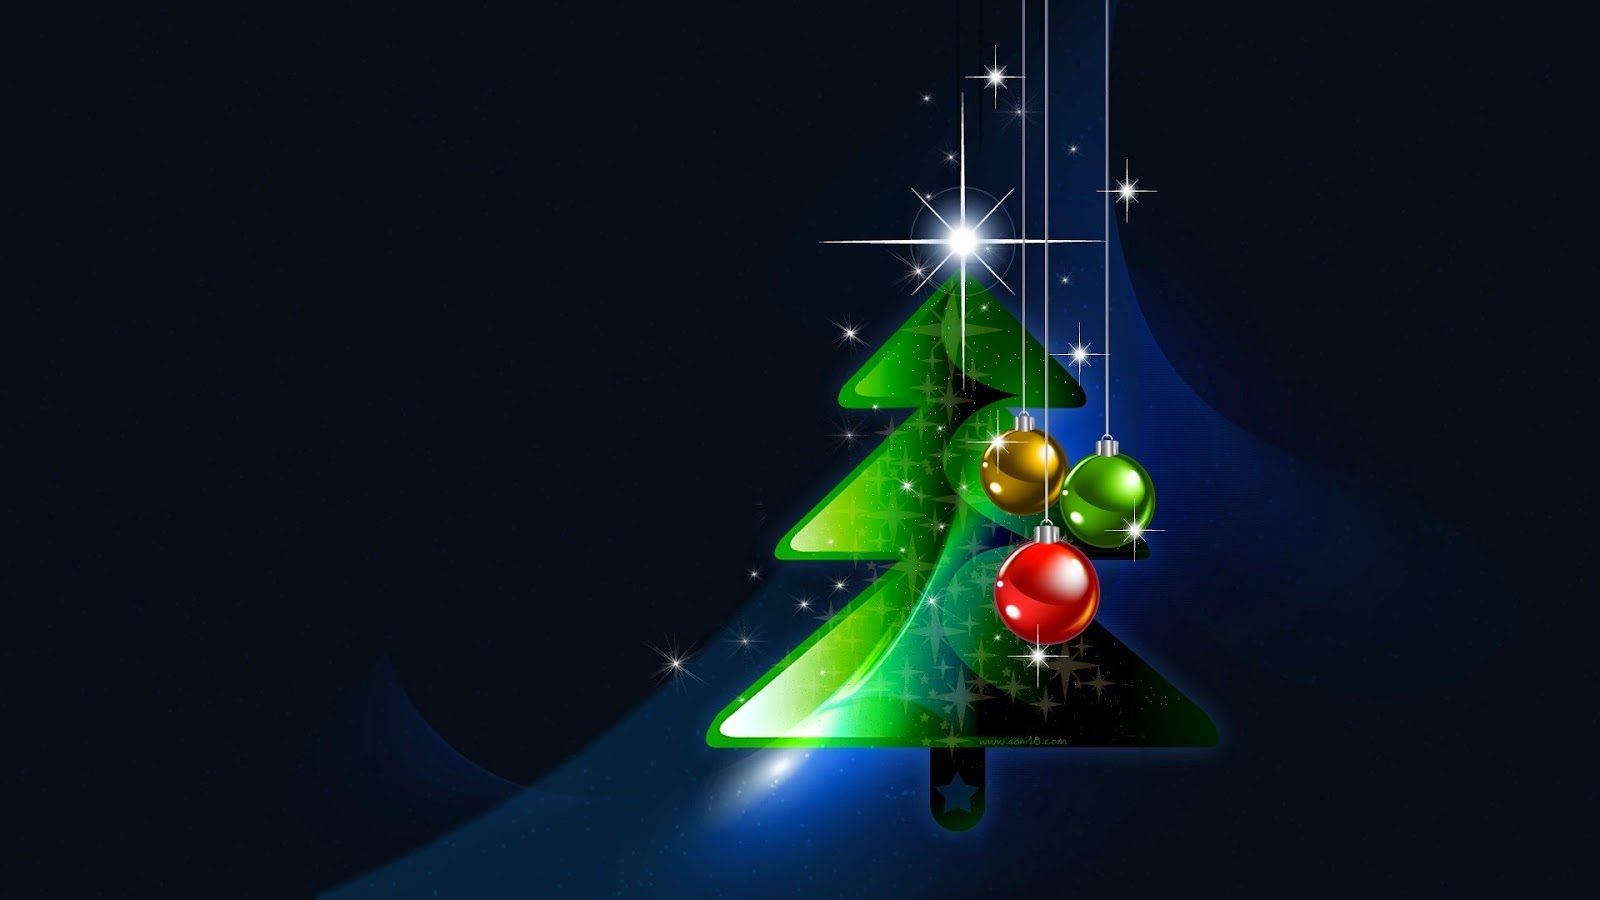 Christmas-tree-with-star-baubles-vector-design-stock-image-template-for-designers.jpg